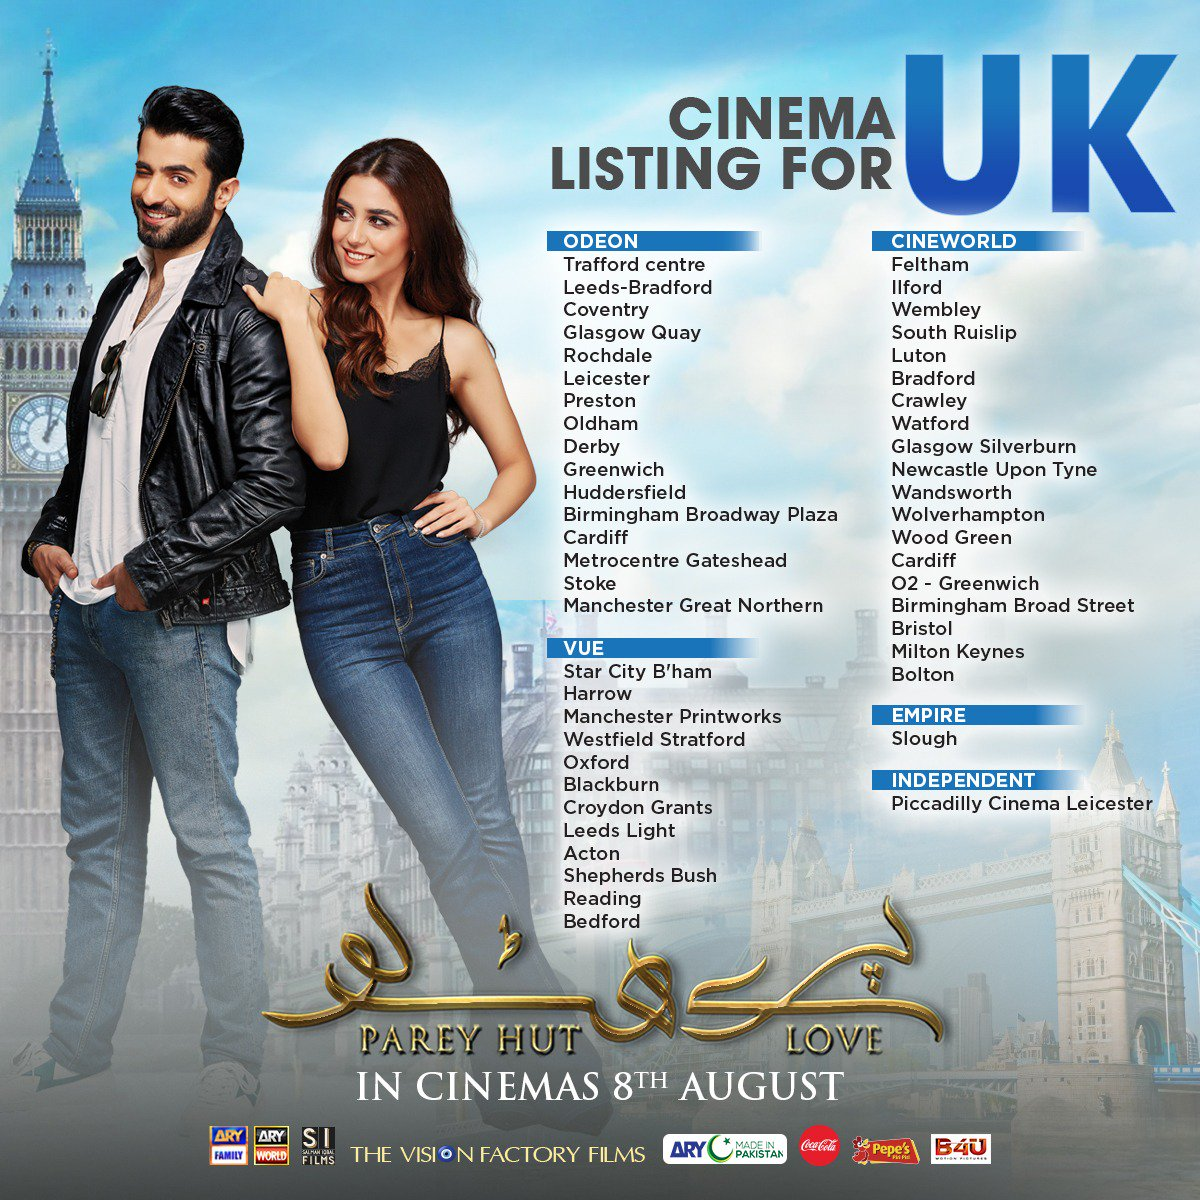 Two big films are all set to release in UK